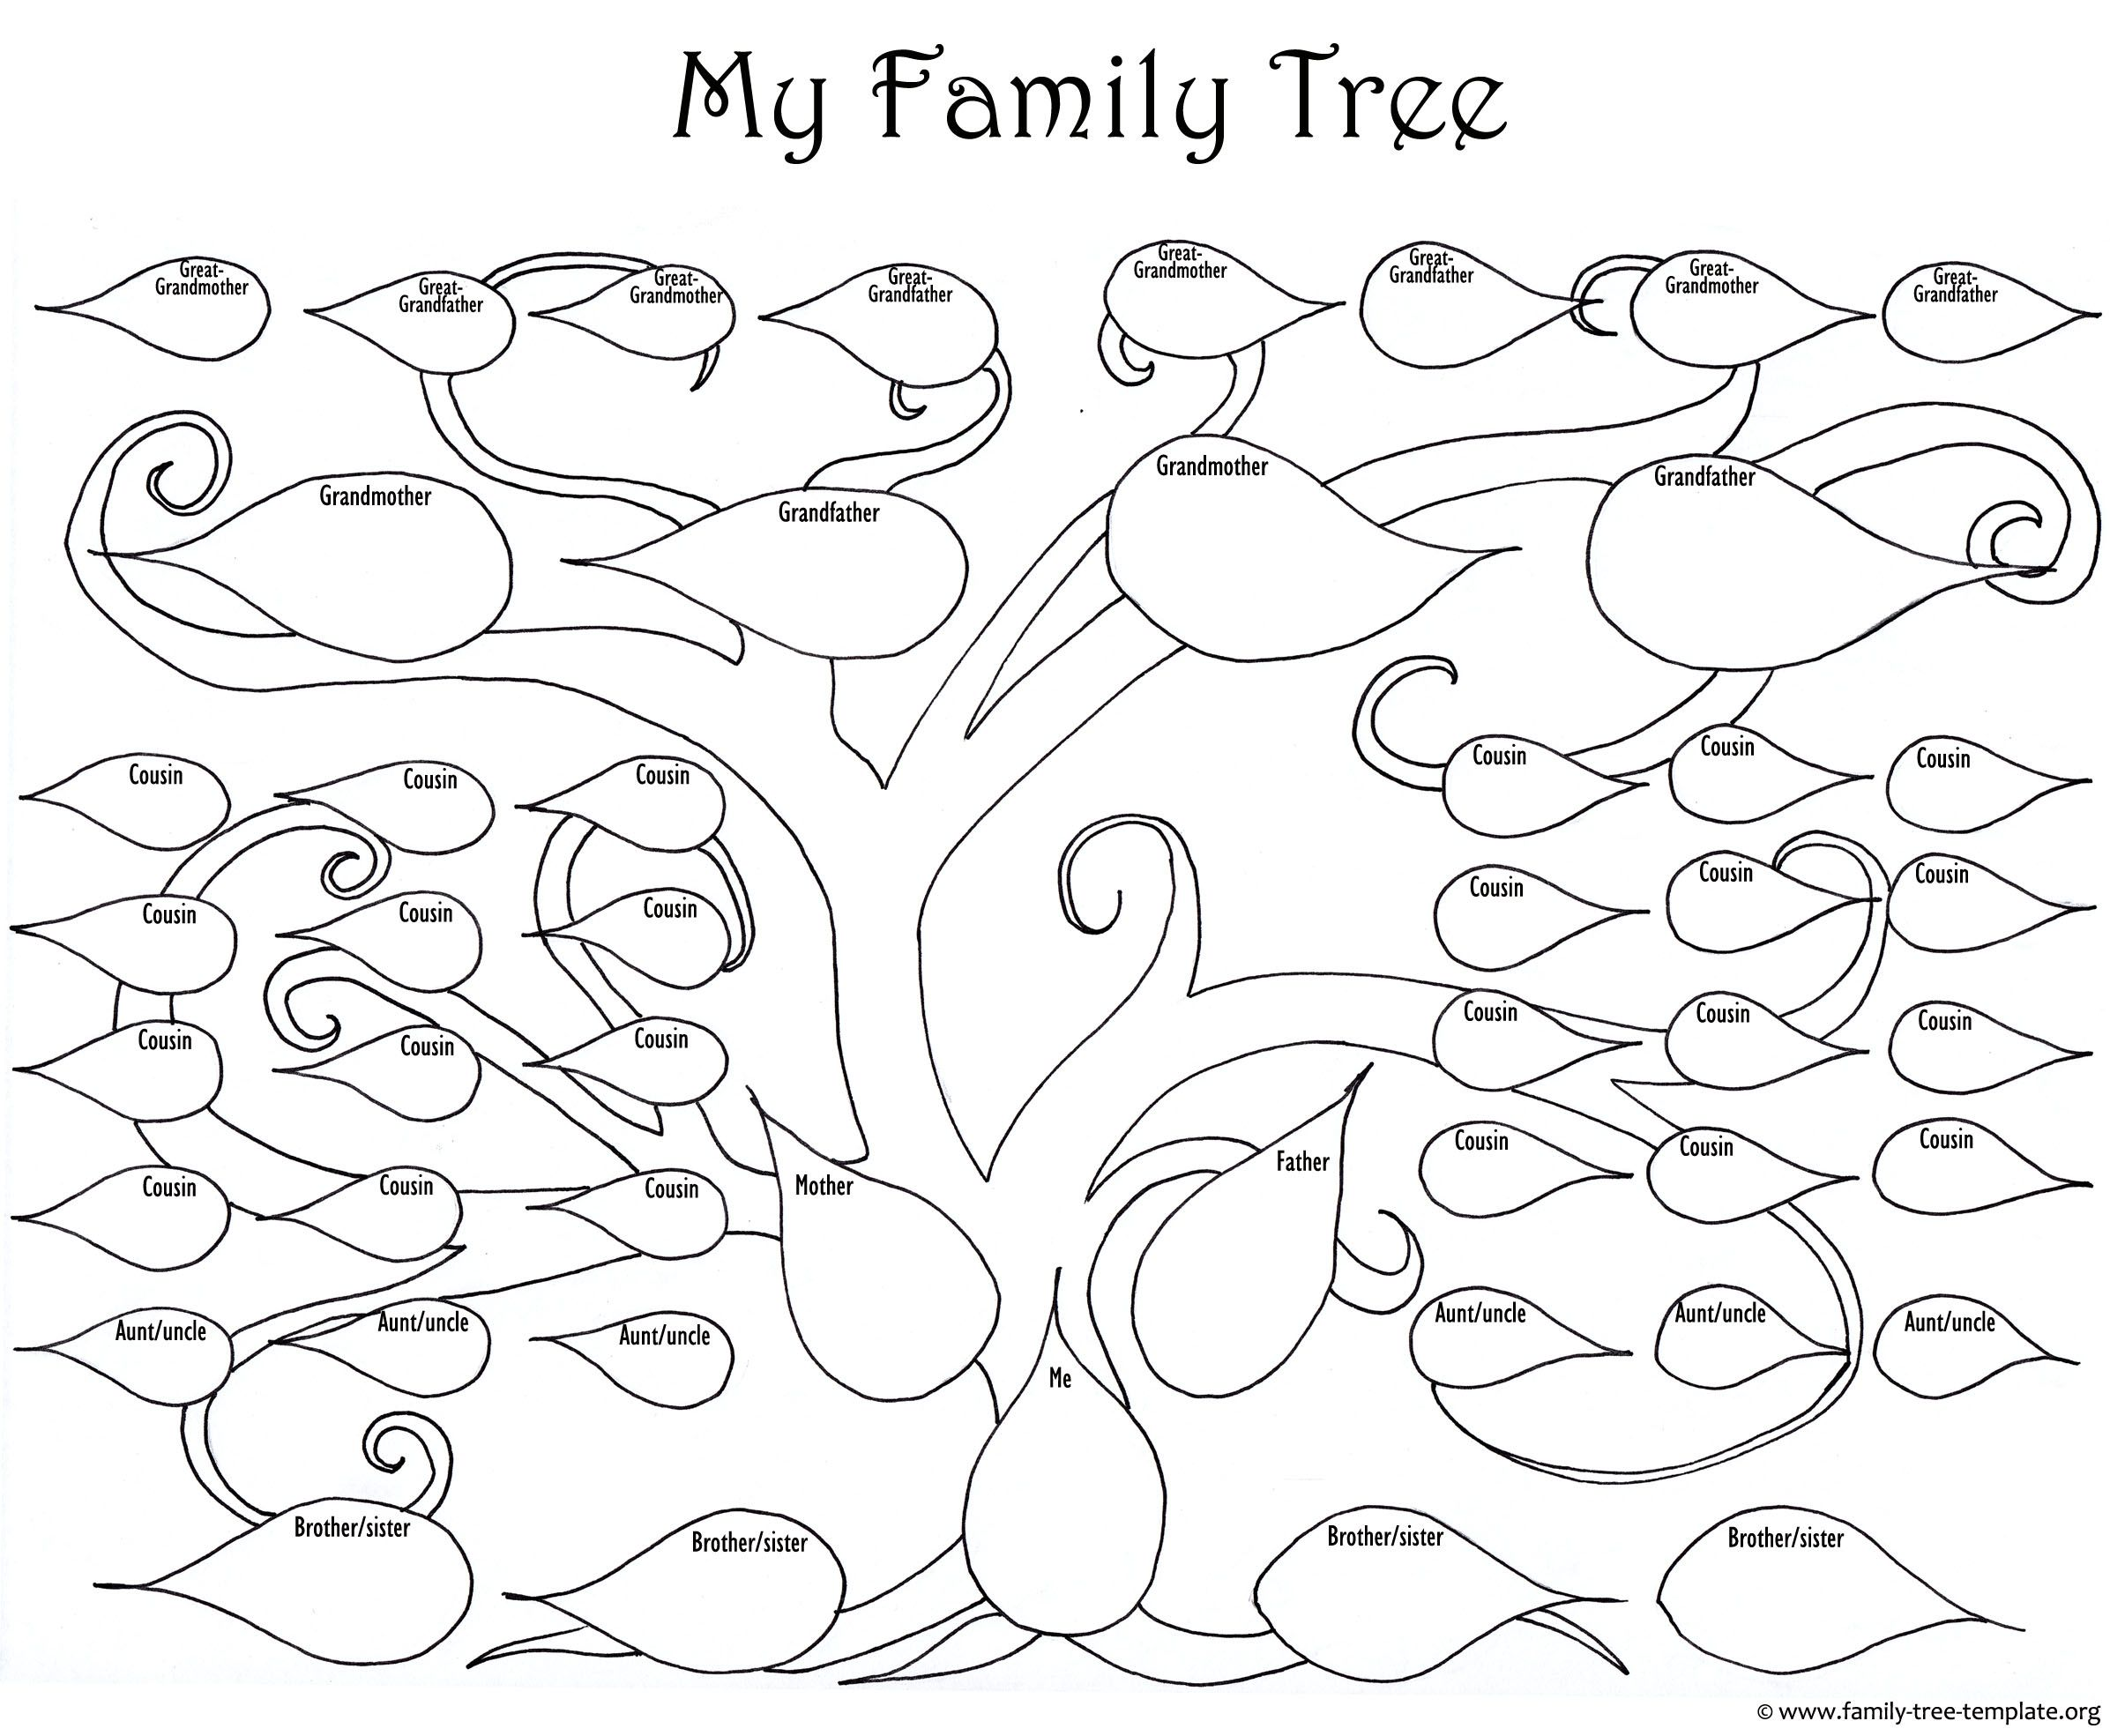 The Big Printable Family Tree as a Fun Coloring Page for